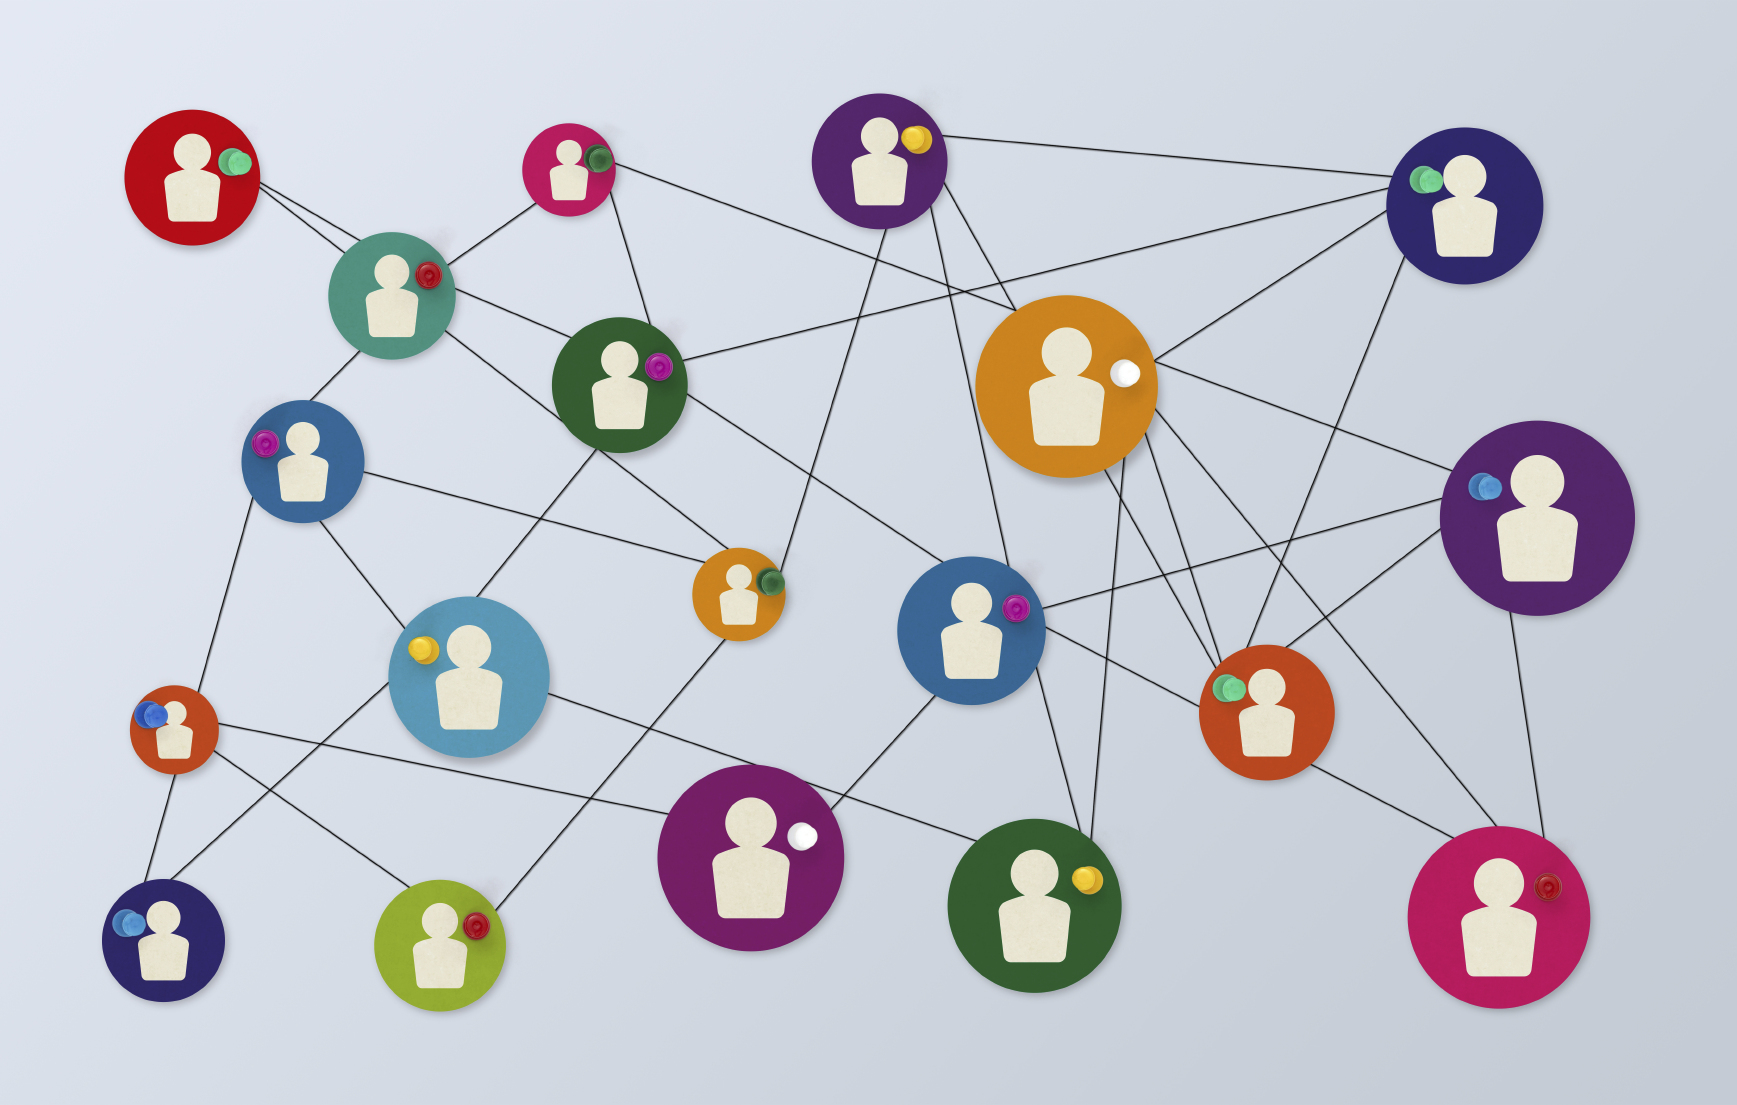 Information graphic depicting a network of people